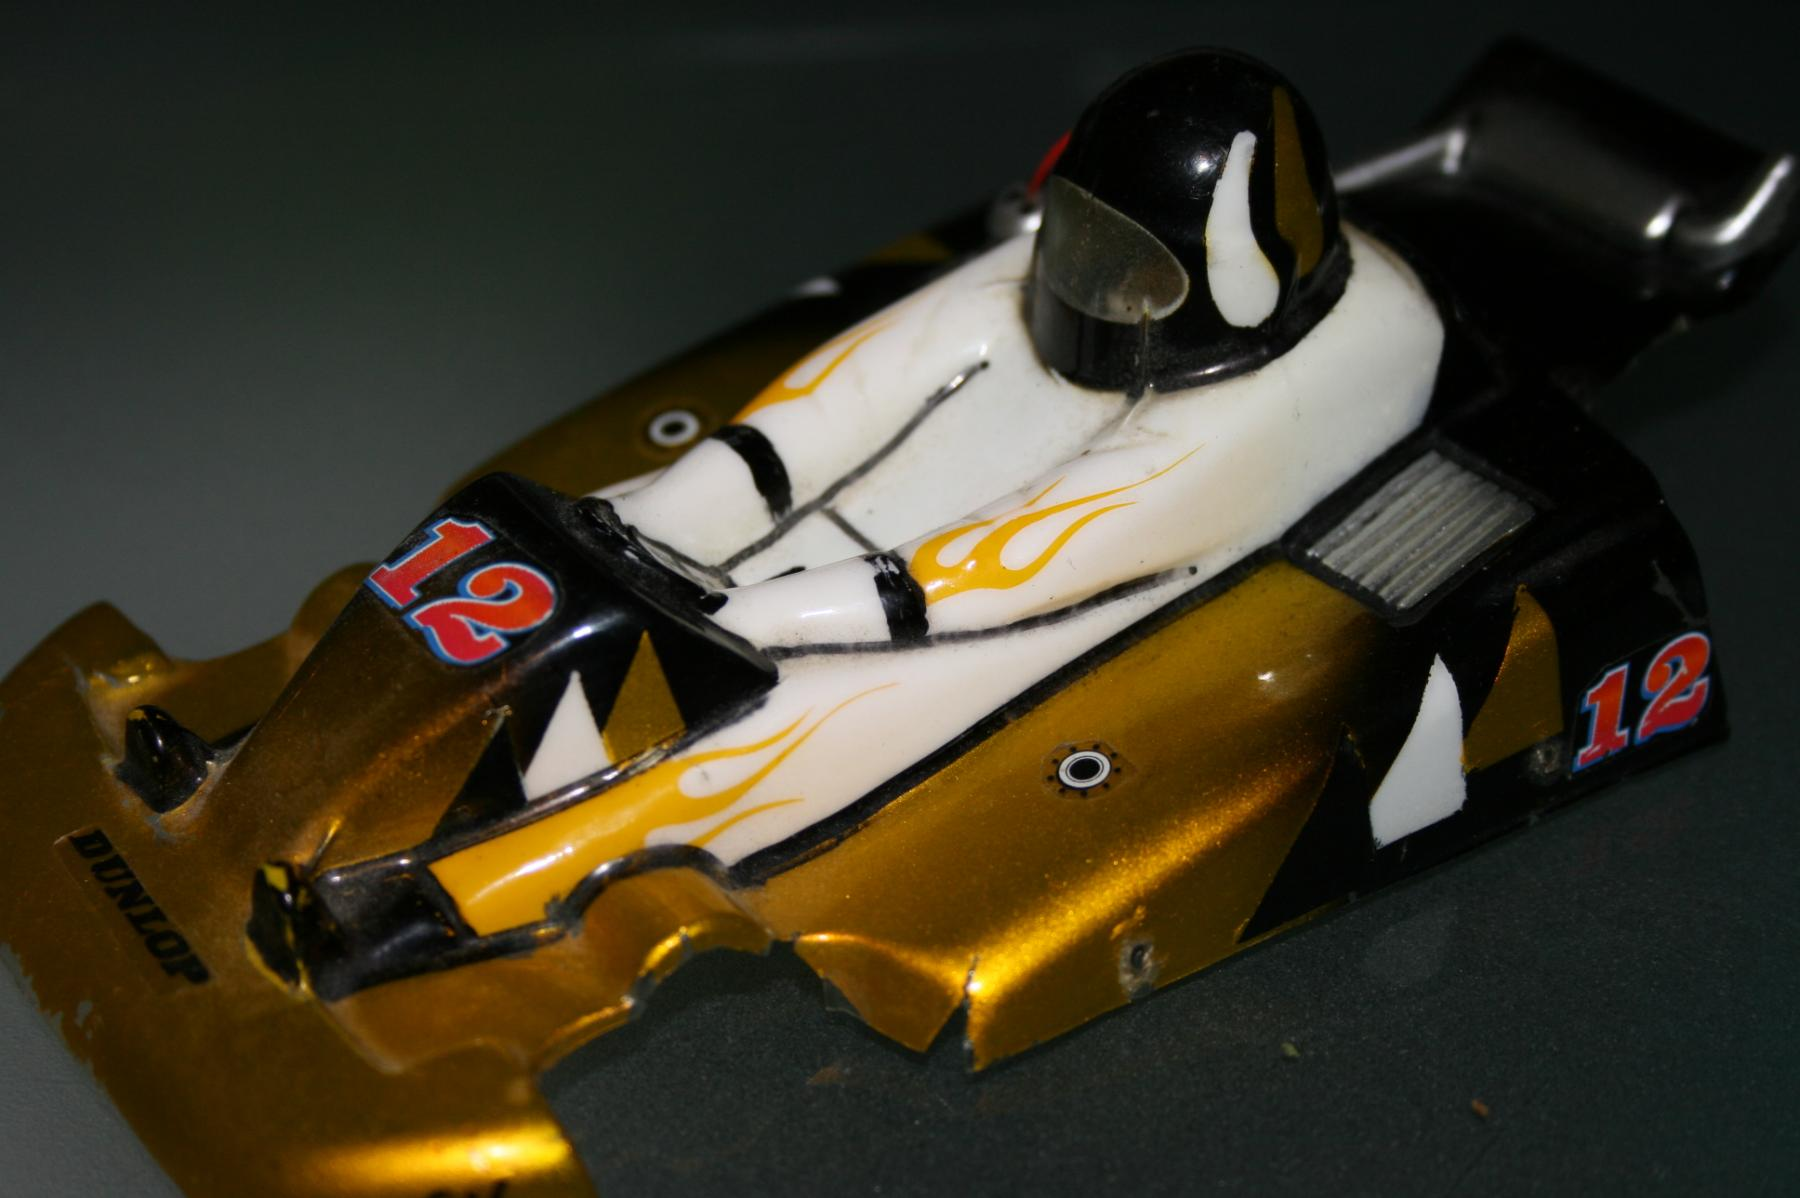 slot car pic 005.JPG